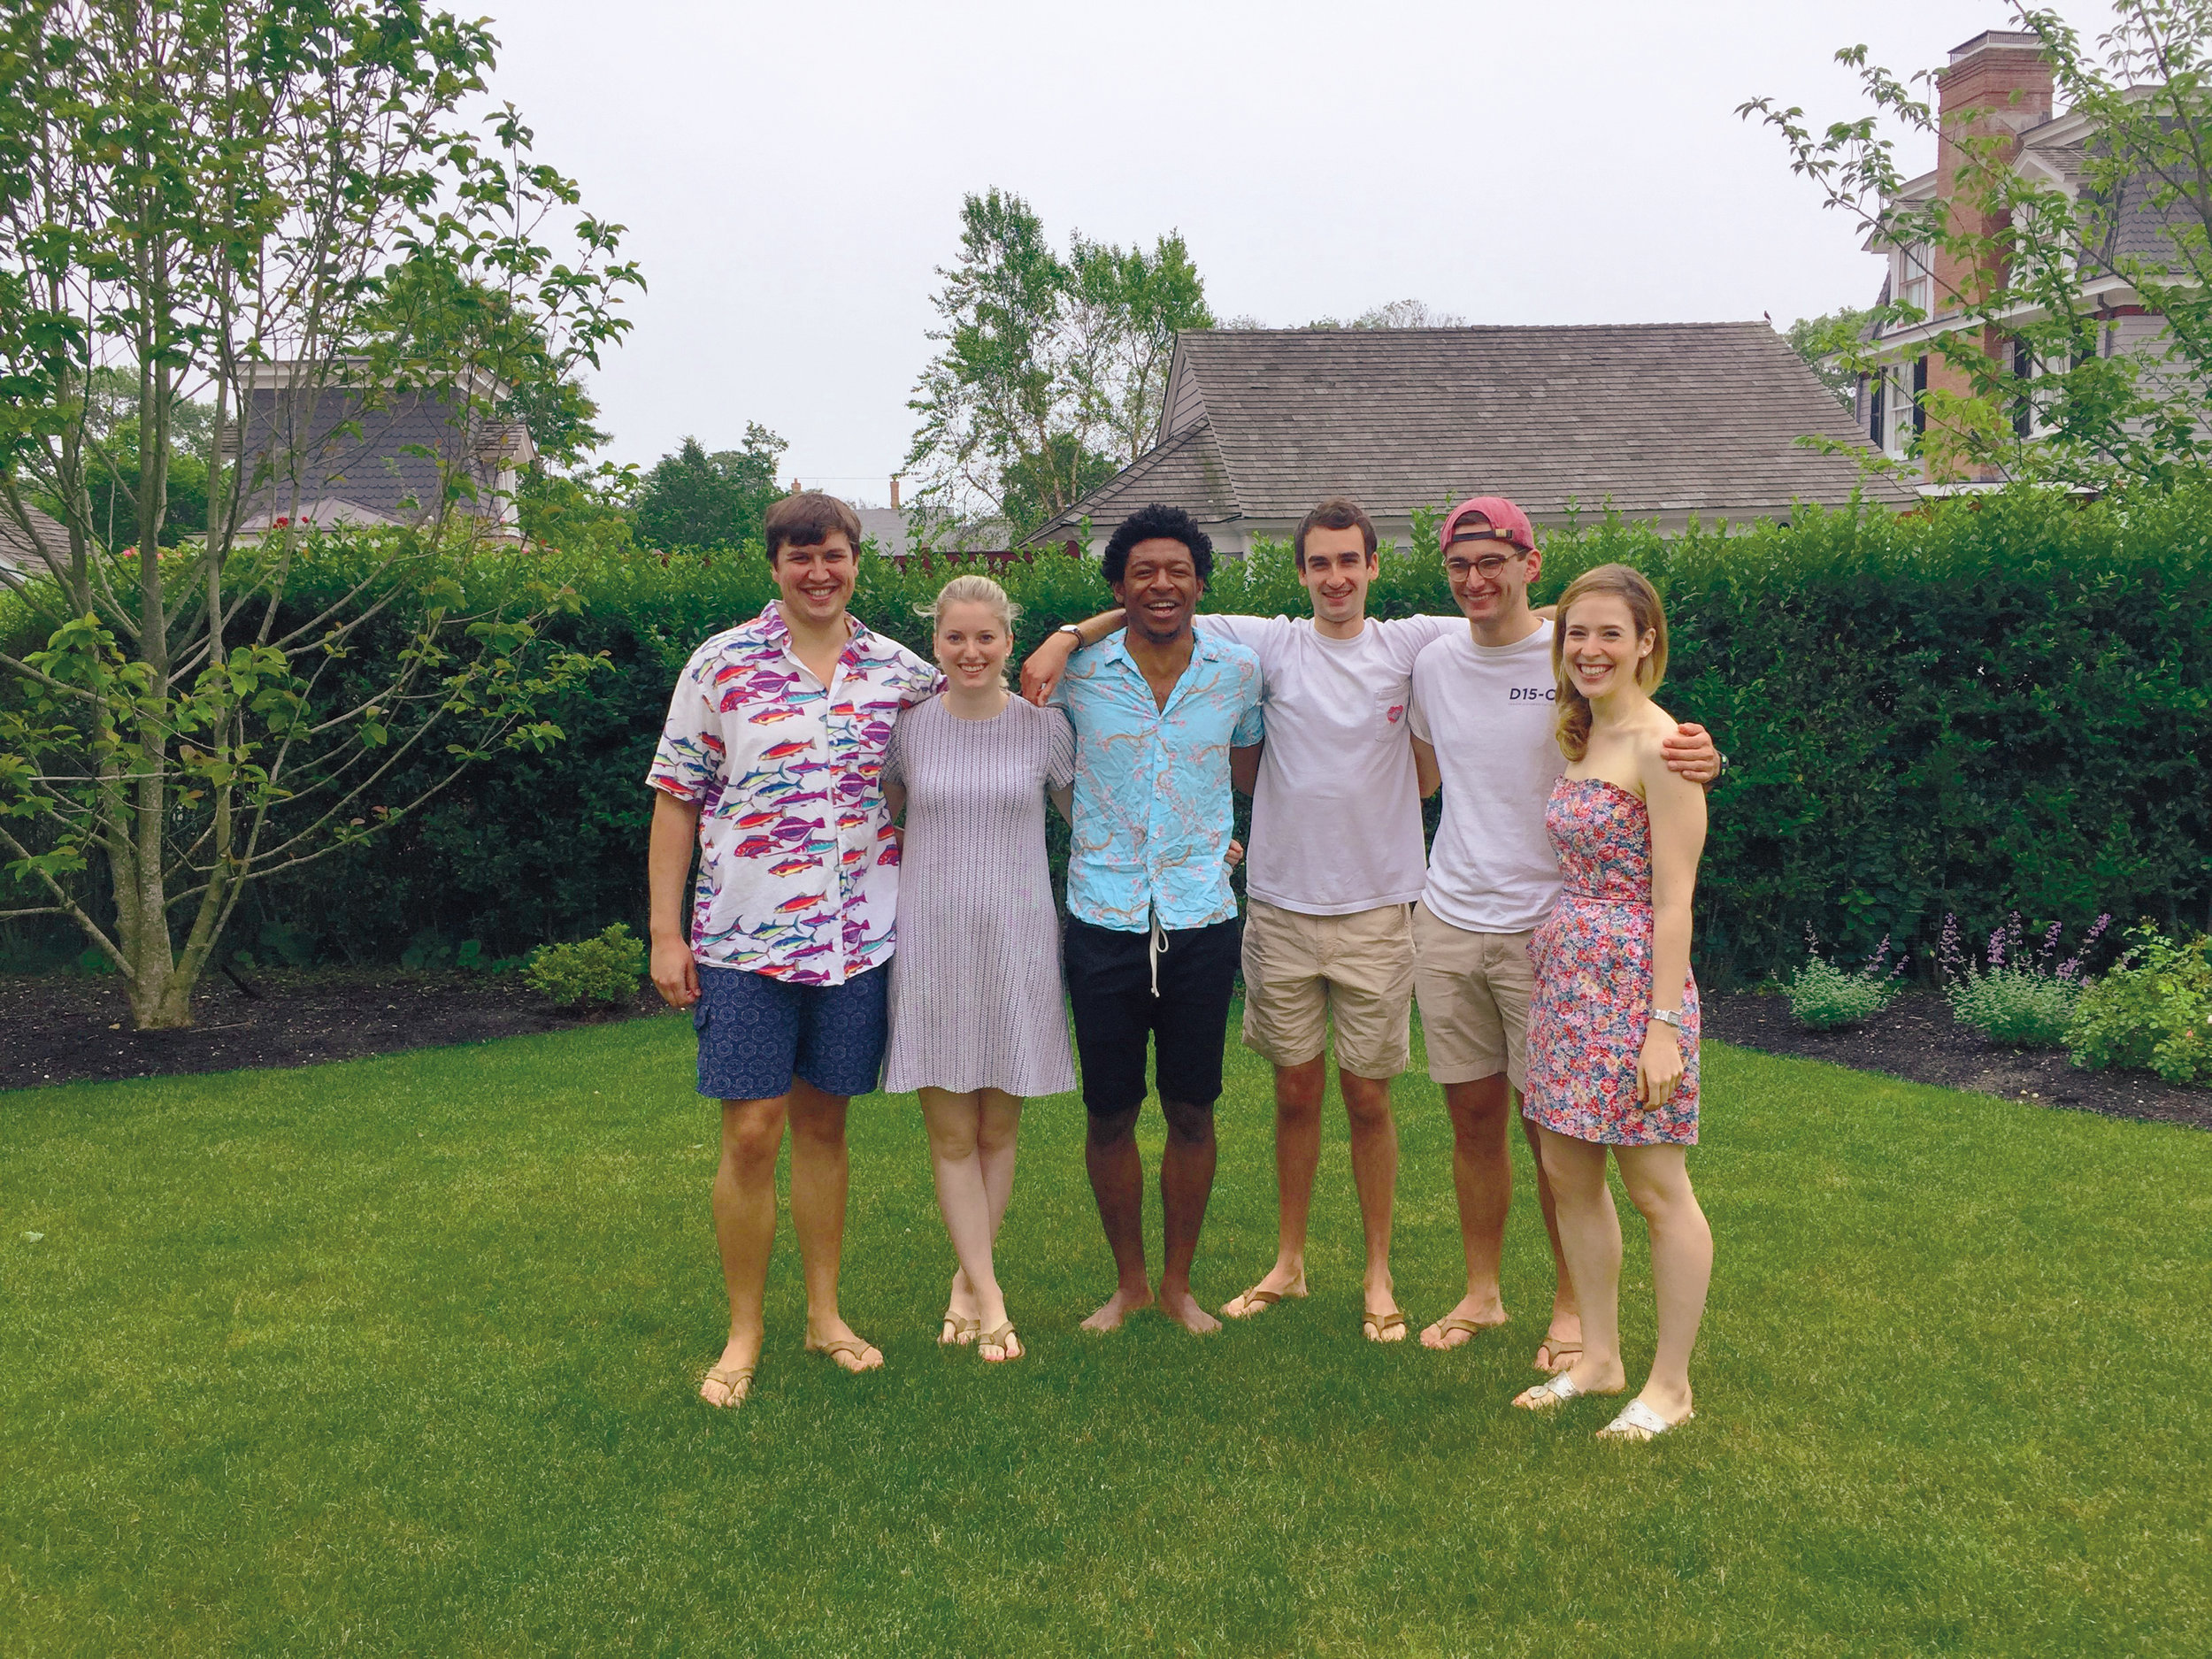 2011 formmates (l. to r.) Fuller Henriques, Katharine Harper, Alvan Mbongo, Cam Parker, Harvey Hinman, Olivia Dickey, and Peter Wu (not pictured) congregated in Quogue, N.Y.